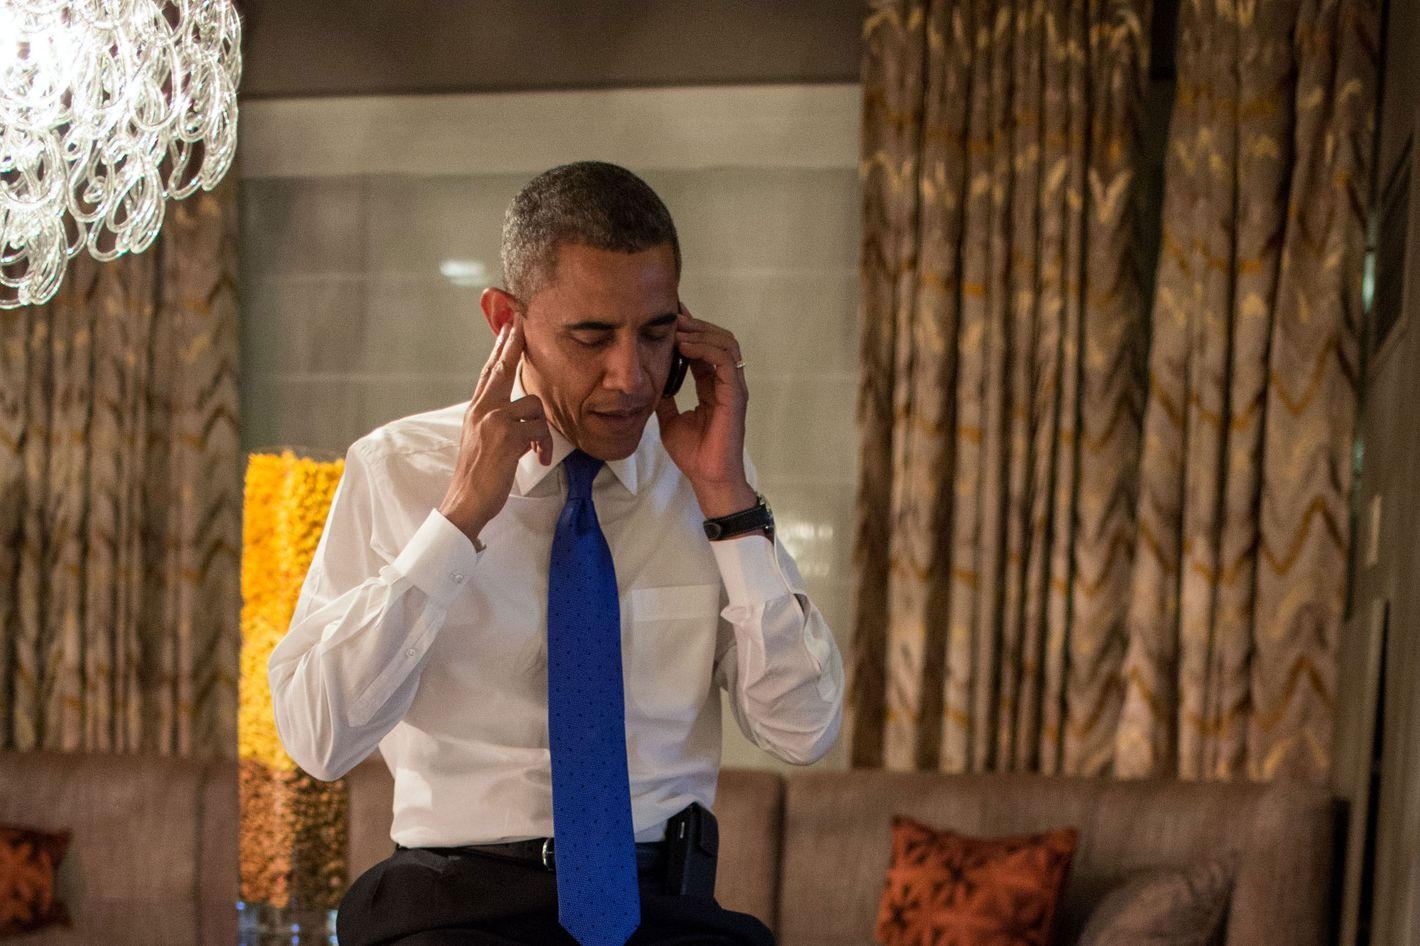 President Barack Obama talks on the phone with former Massachusetts Gov. Mitt Romney in the Presidential Suite at the Fairmont Chicago Millennium Park in Chicago, Ill., Nov. 6, 2012.